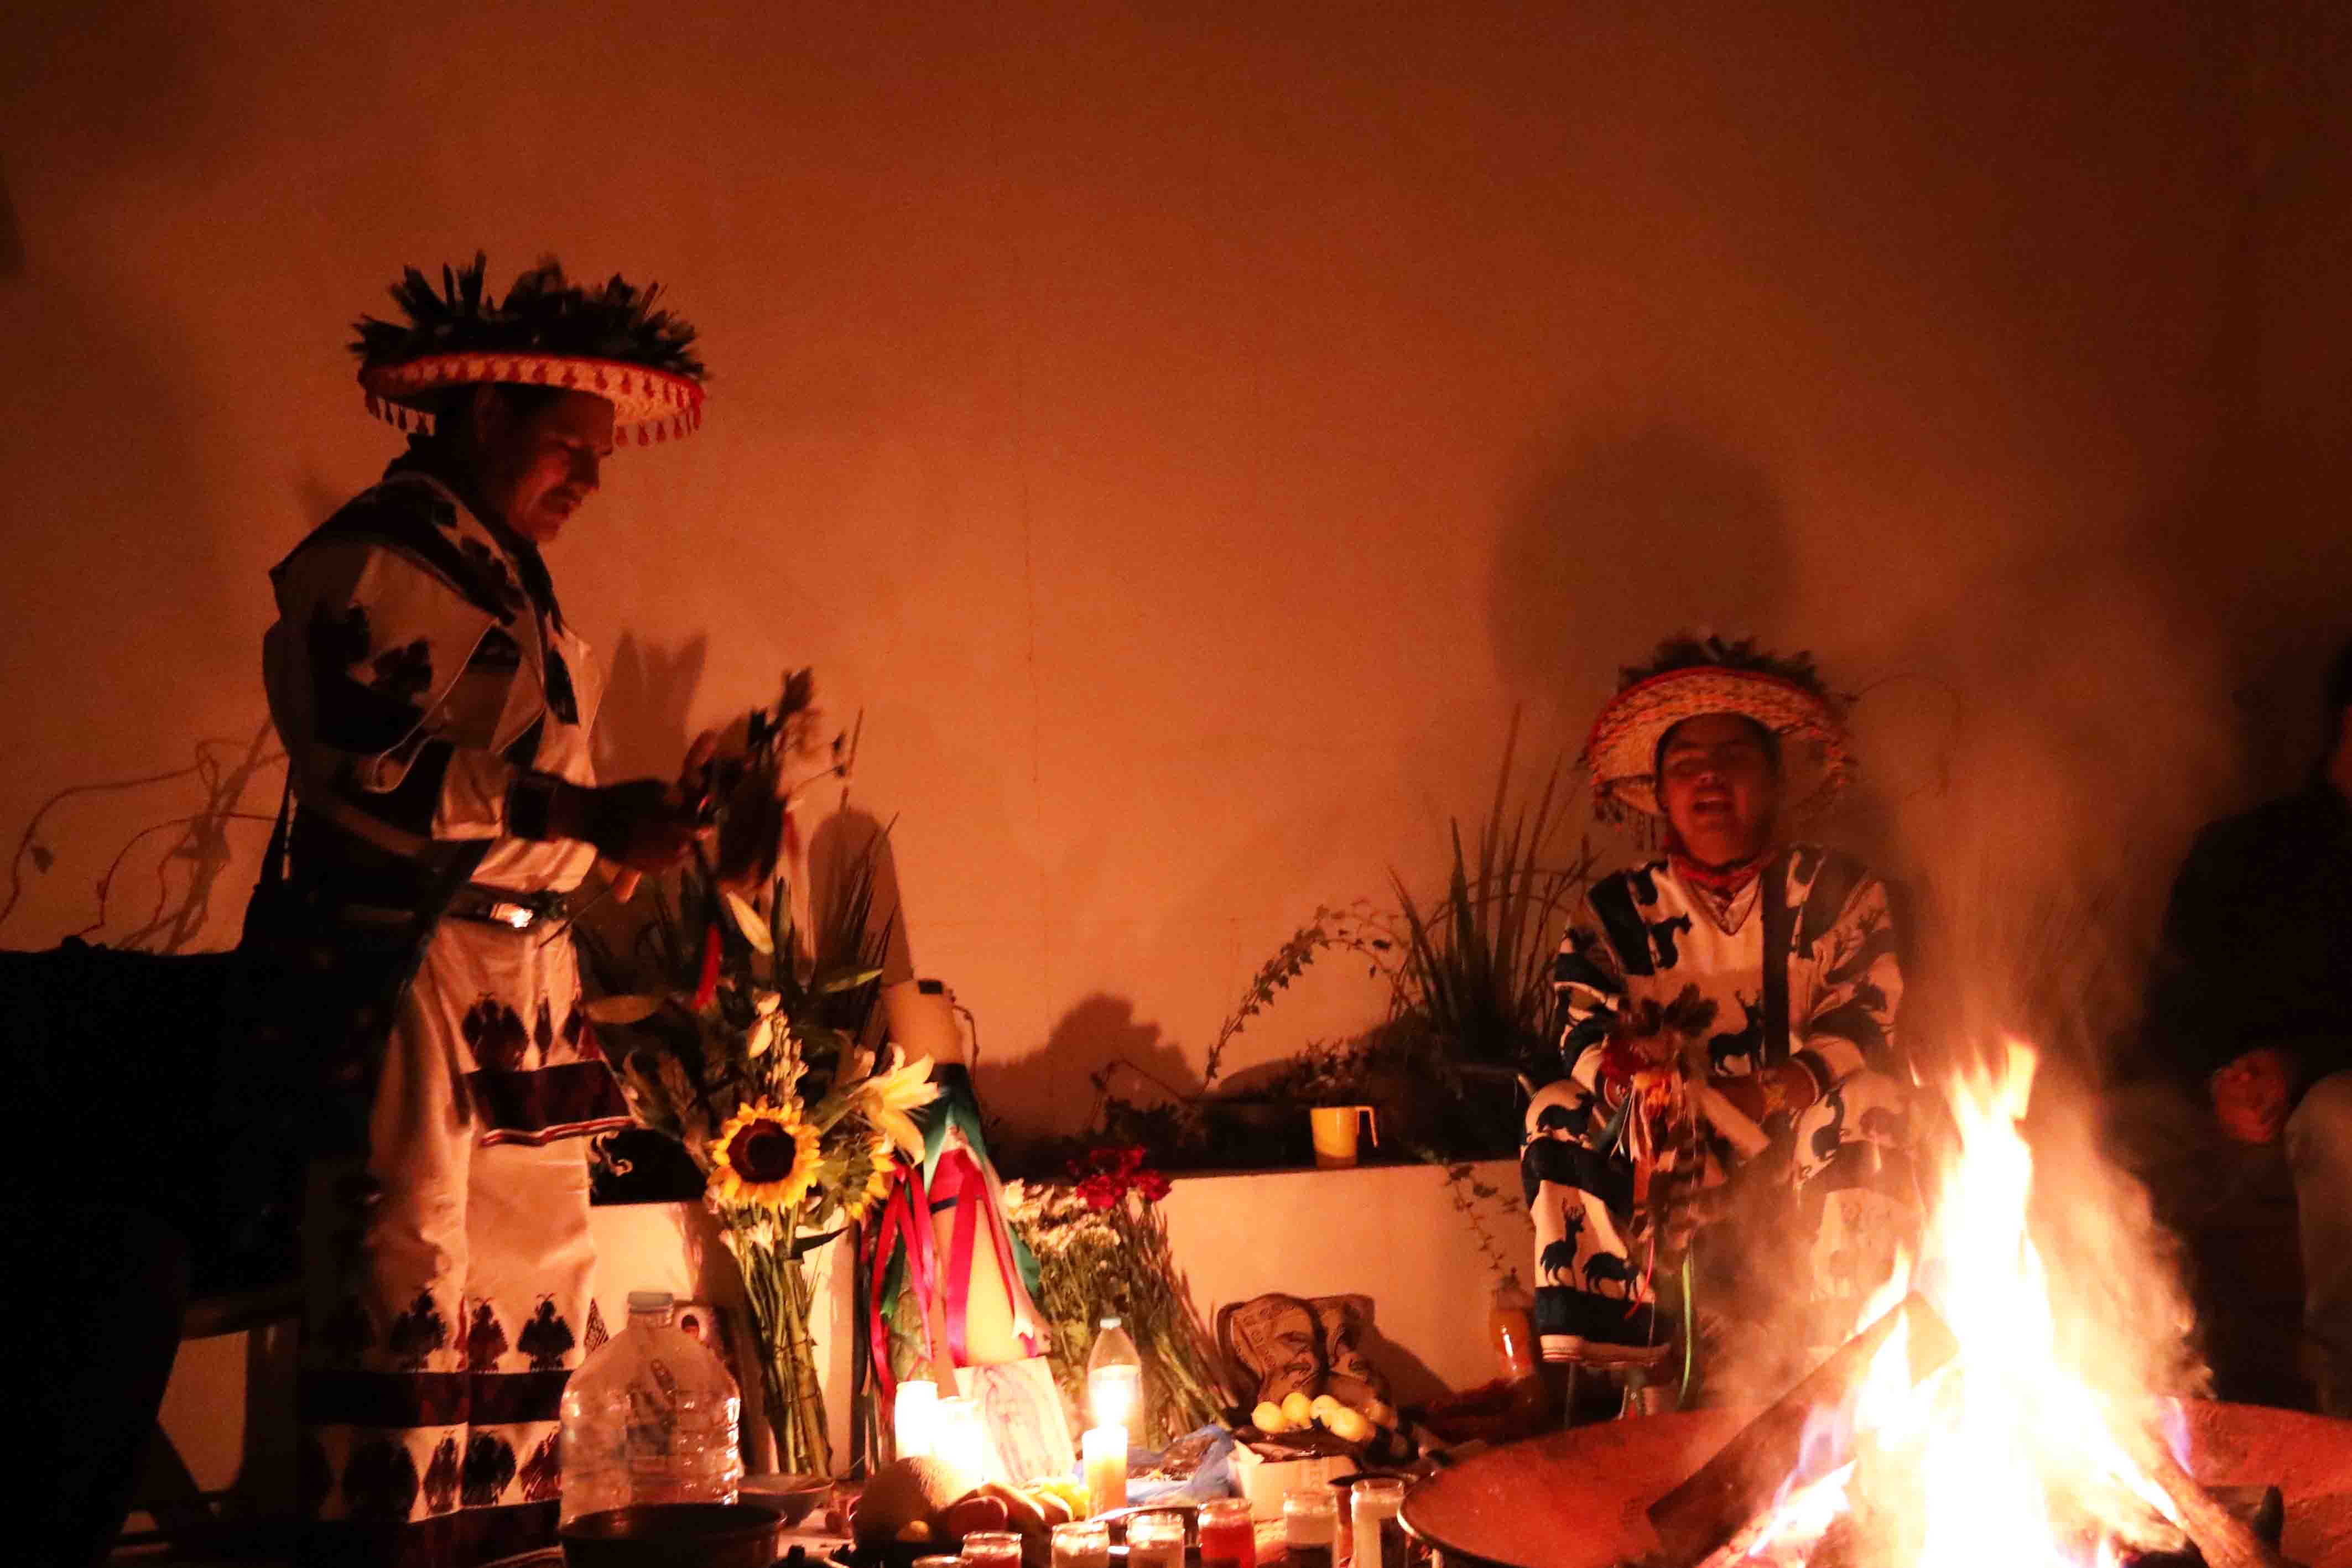 Two Huichols singing traditional wixárika songs with a campfire, in their typical costumes, against a background of plants, flowers and an altar.